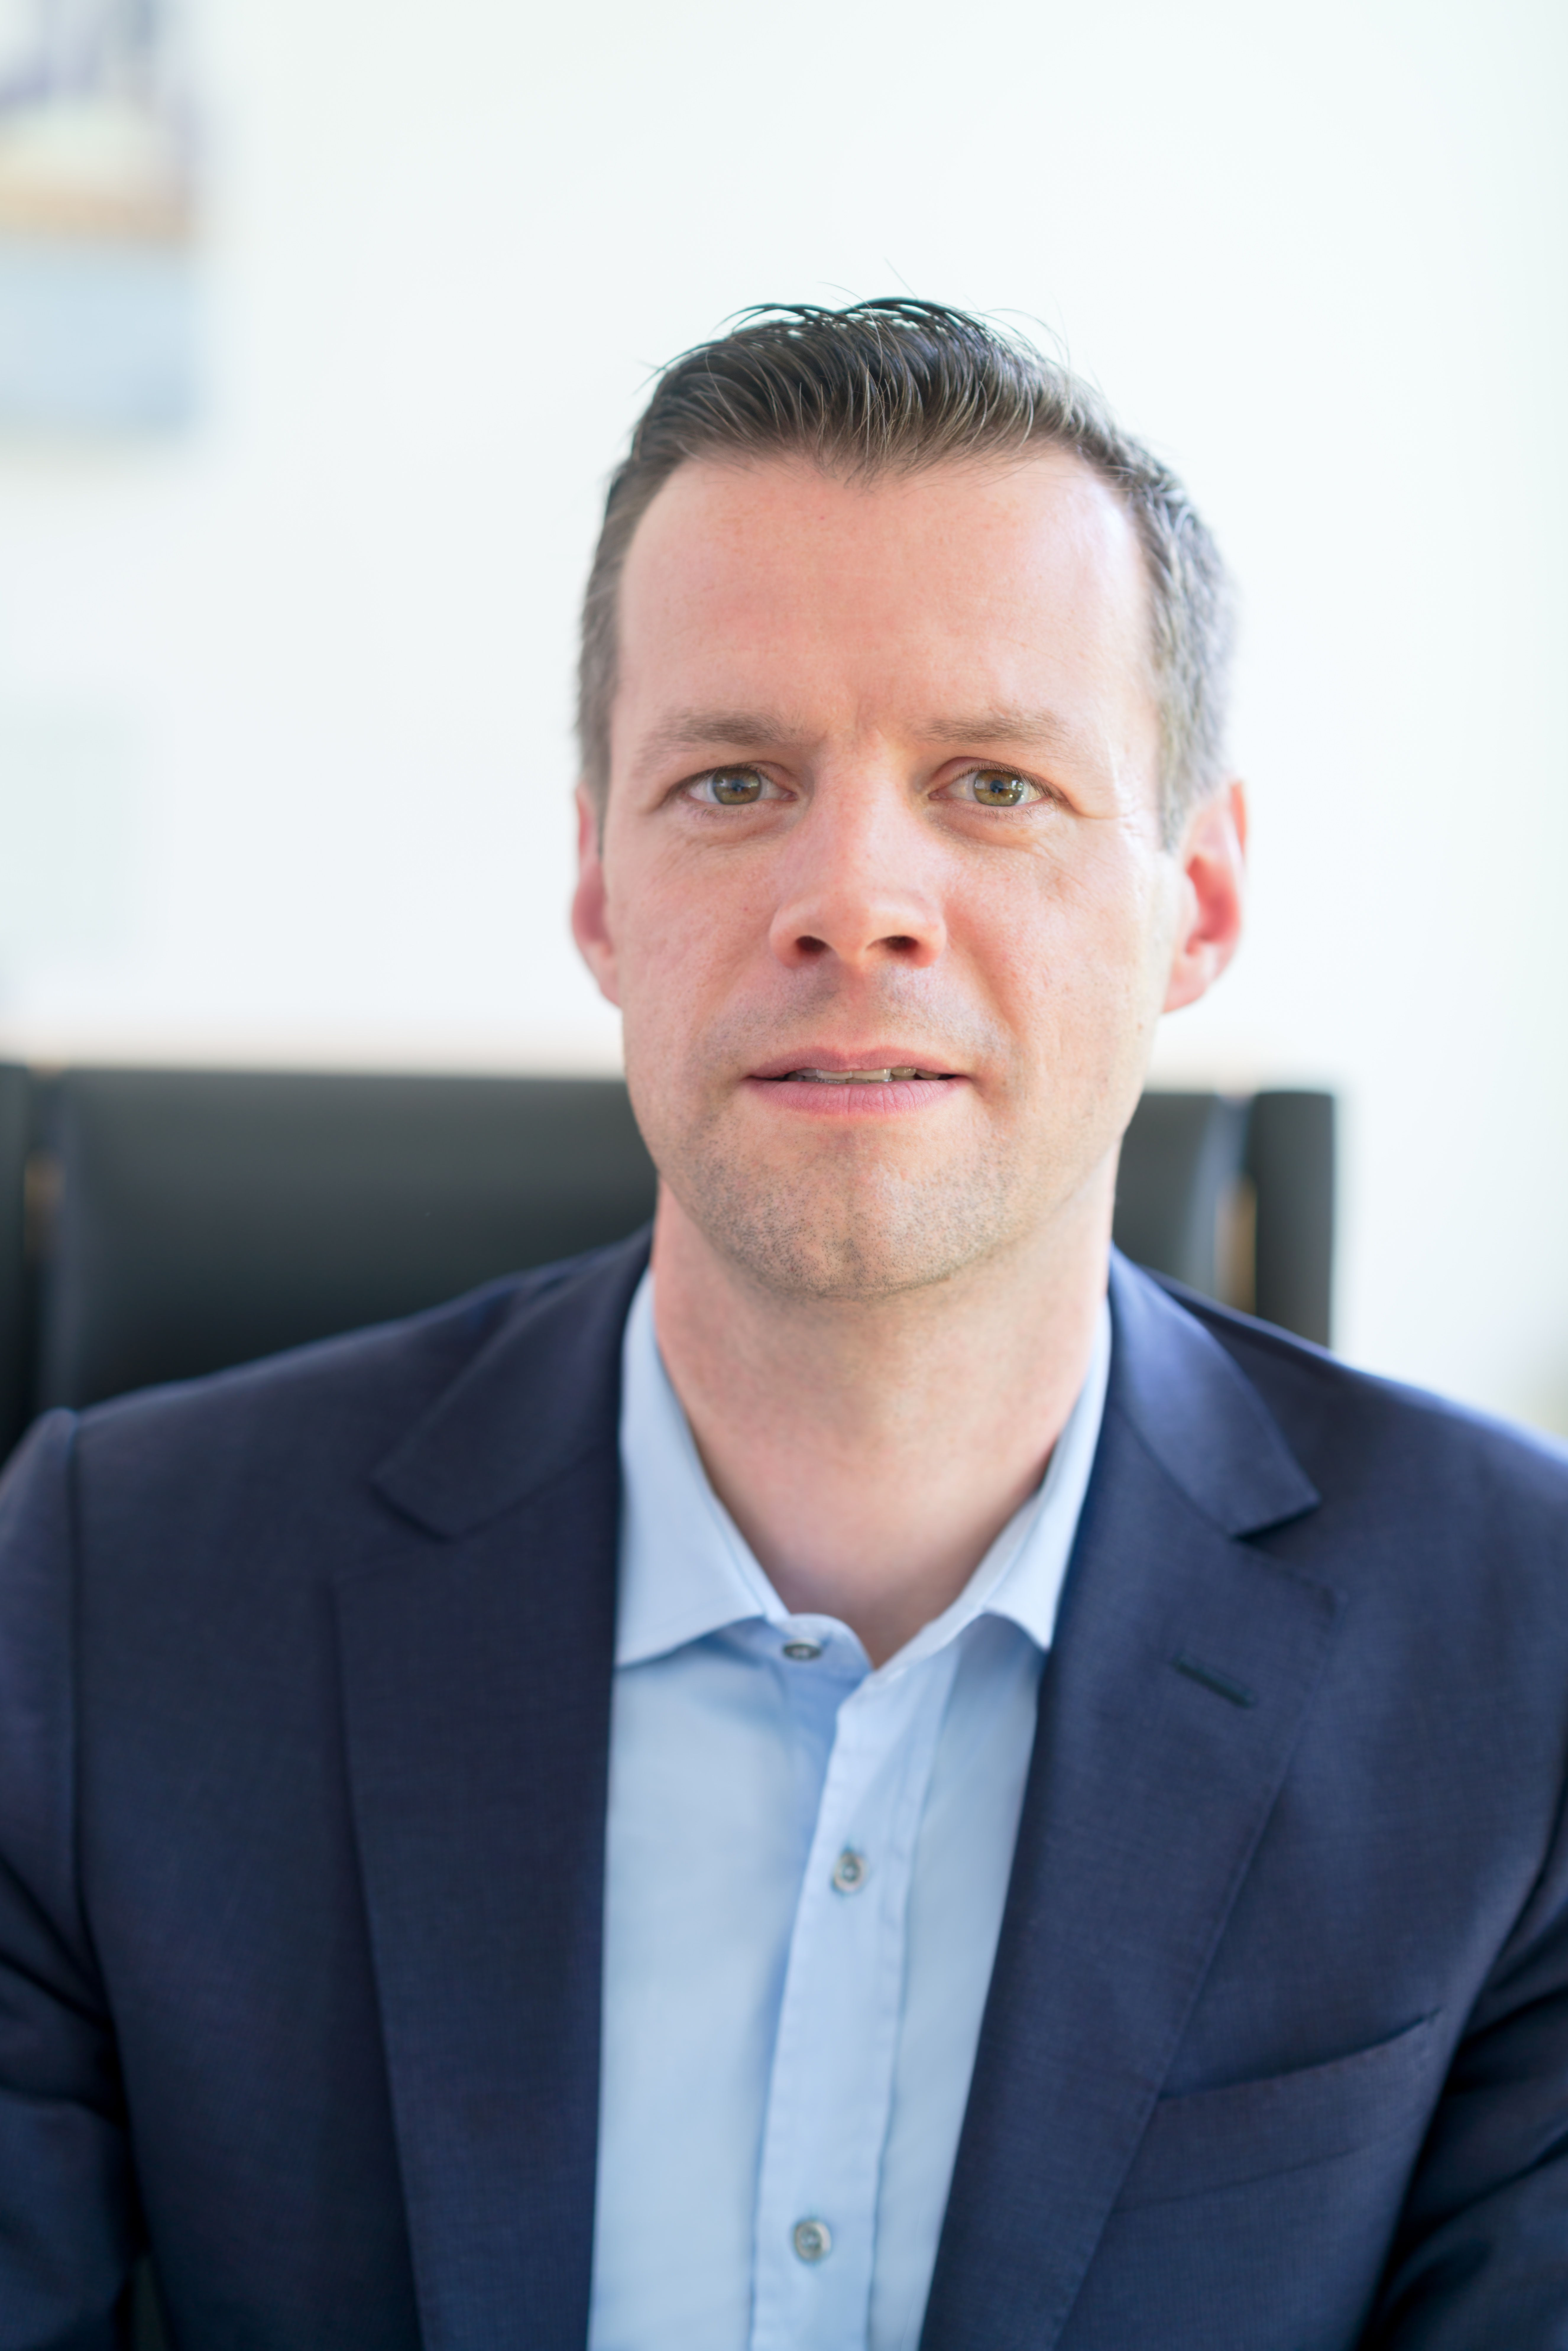 Heiner Lang will join the board of management of Bosch Rexroth AG on August 1, 2019.